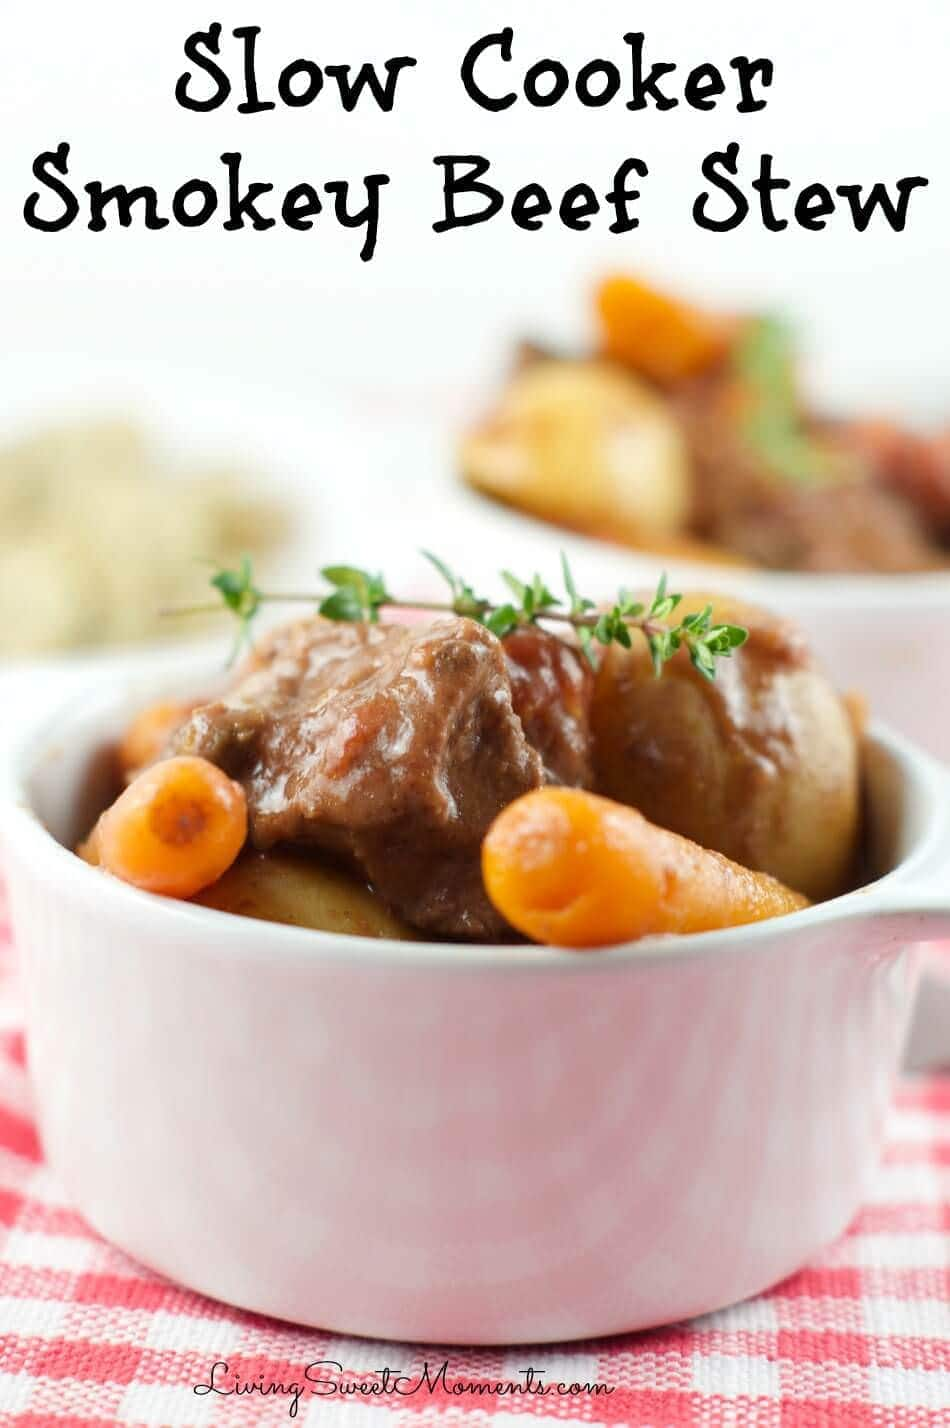 slow-cooker-smokey-beef-stew-recipe-cover